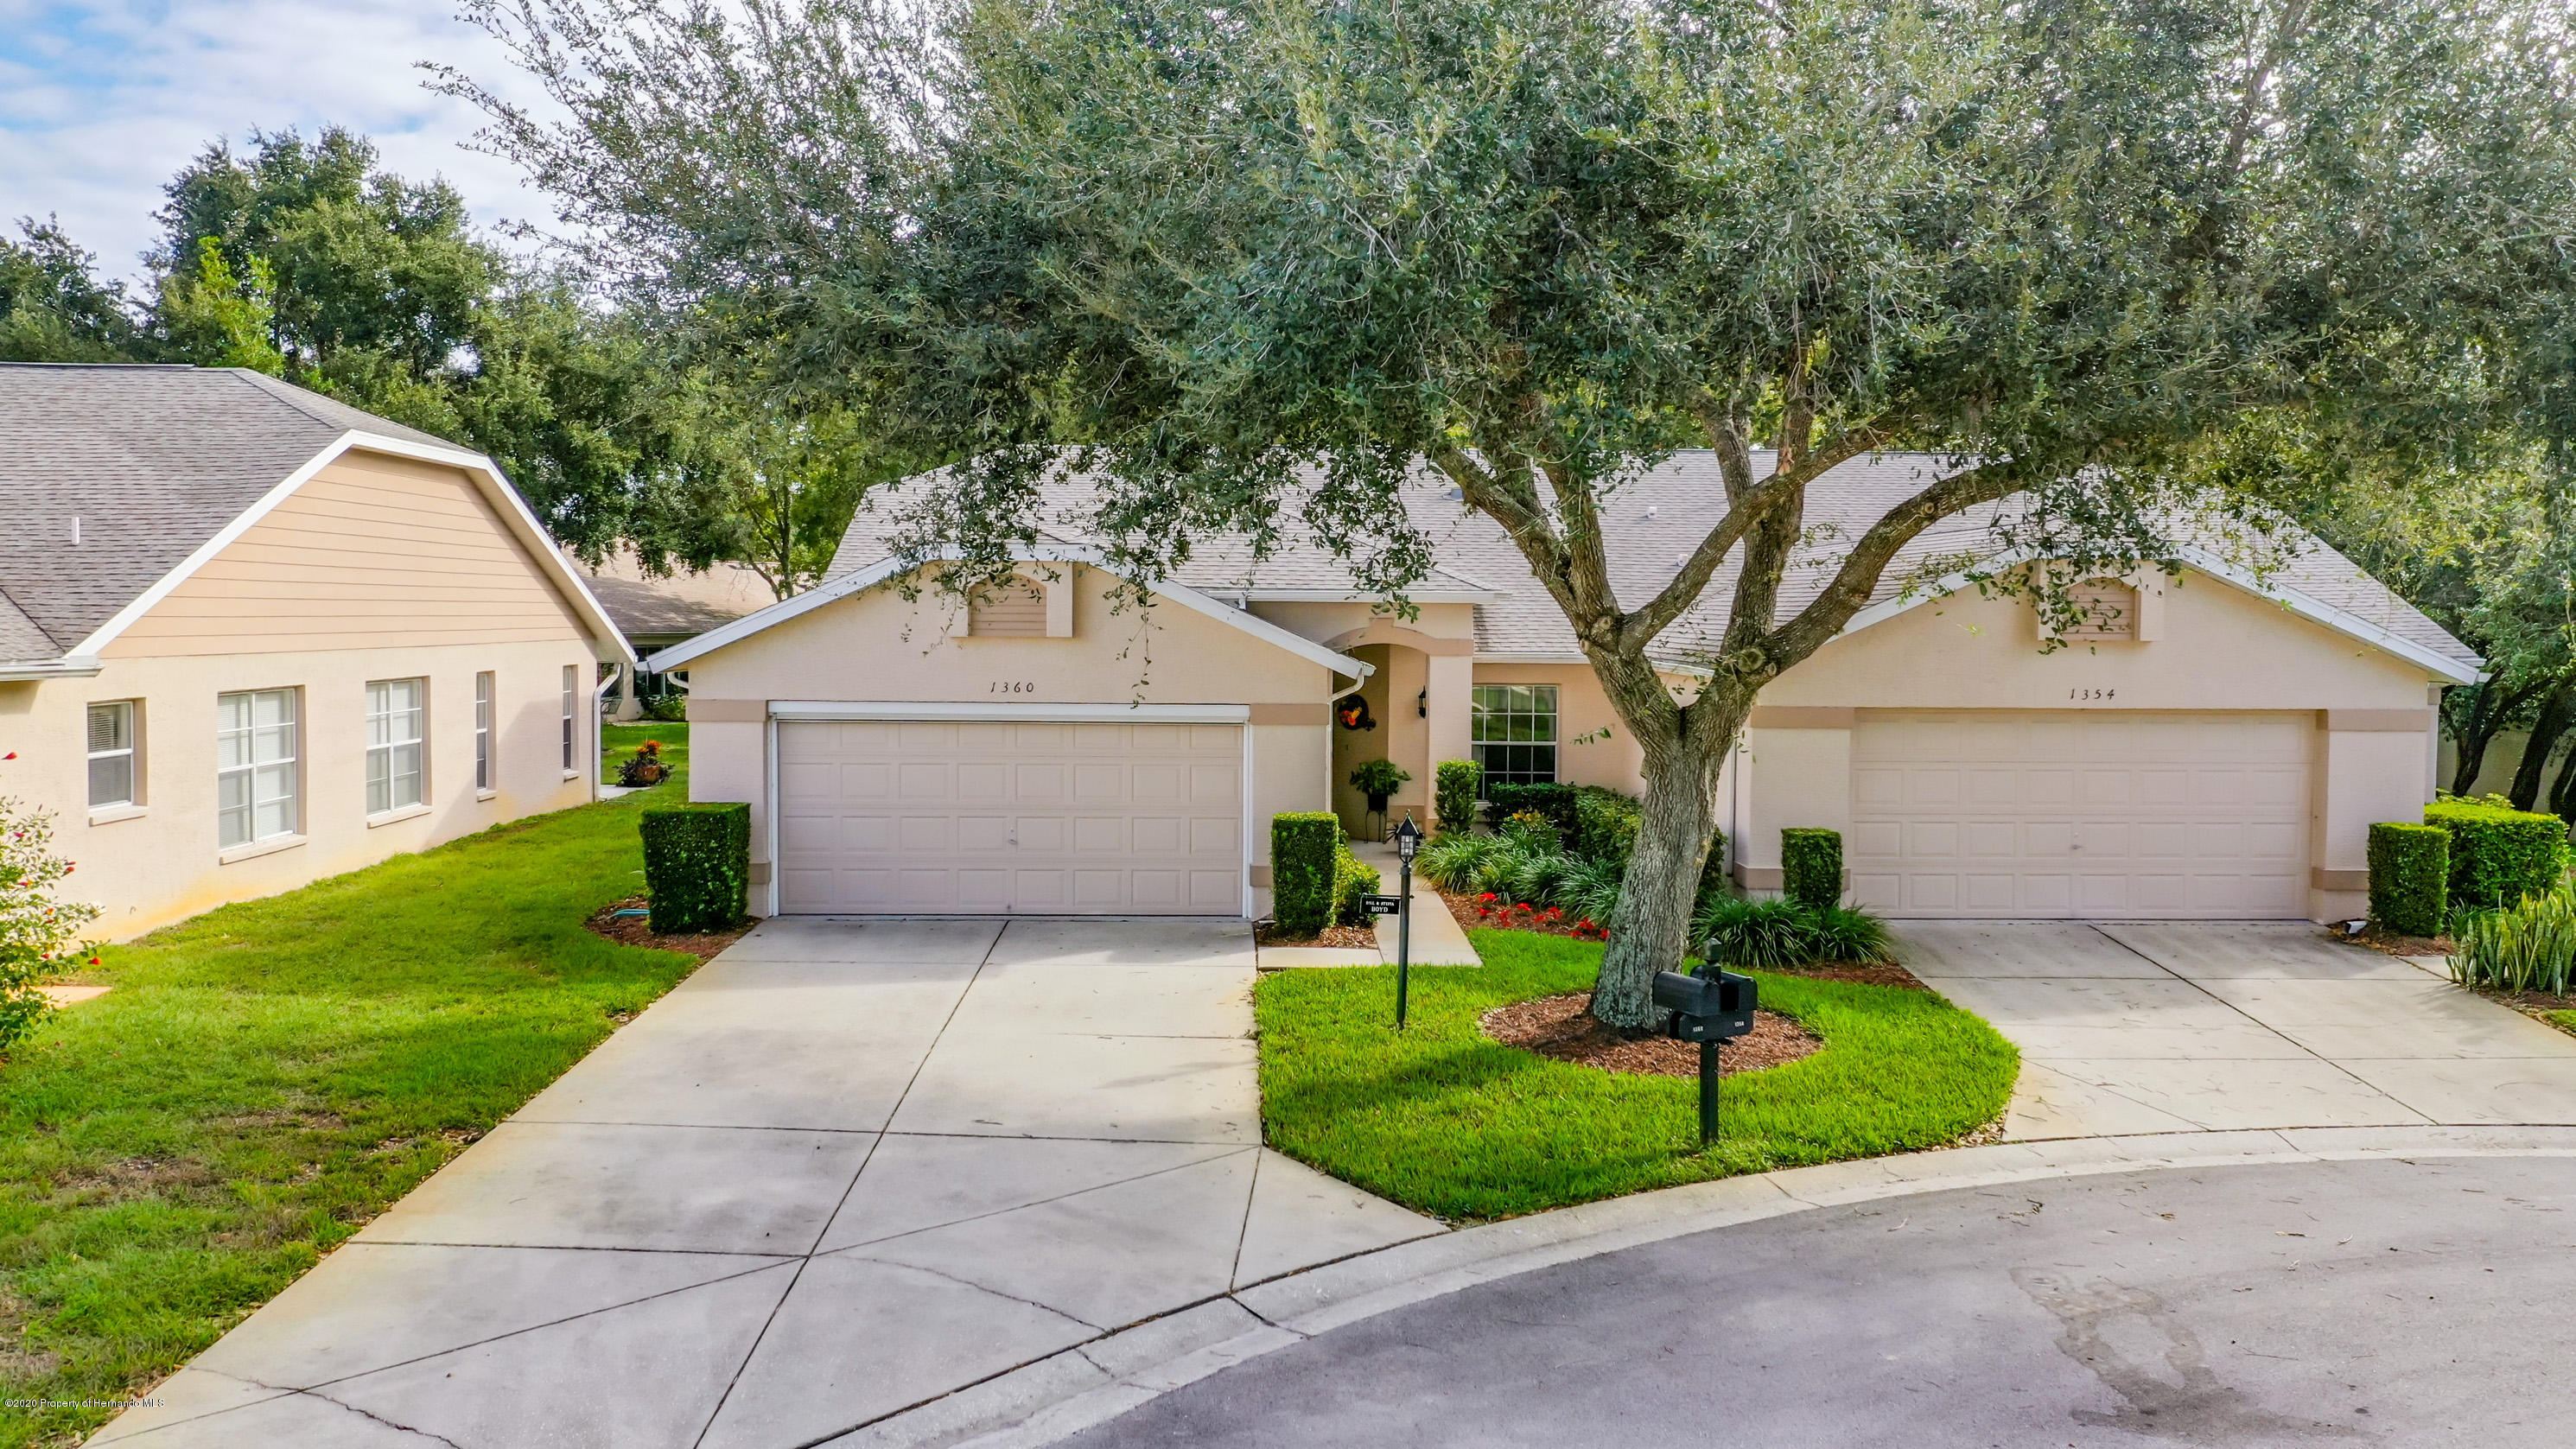 Details for 1360 Crescent Oaks Court, Spring Hill, FL 34606